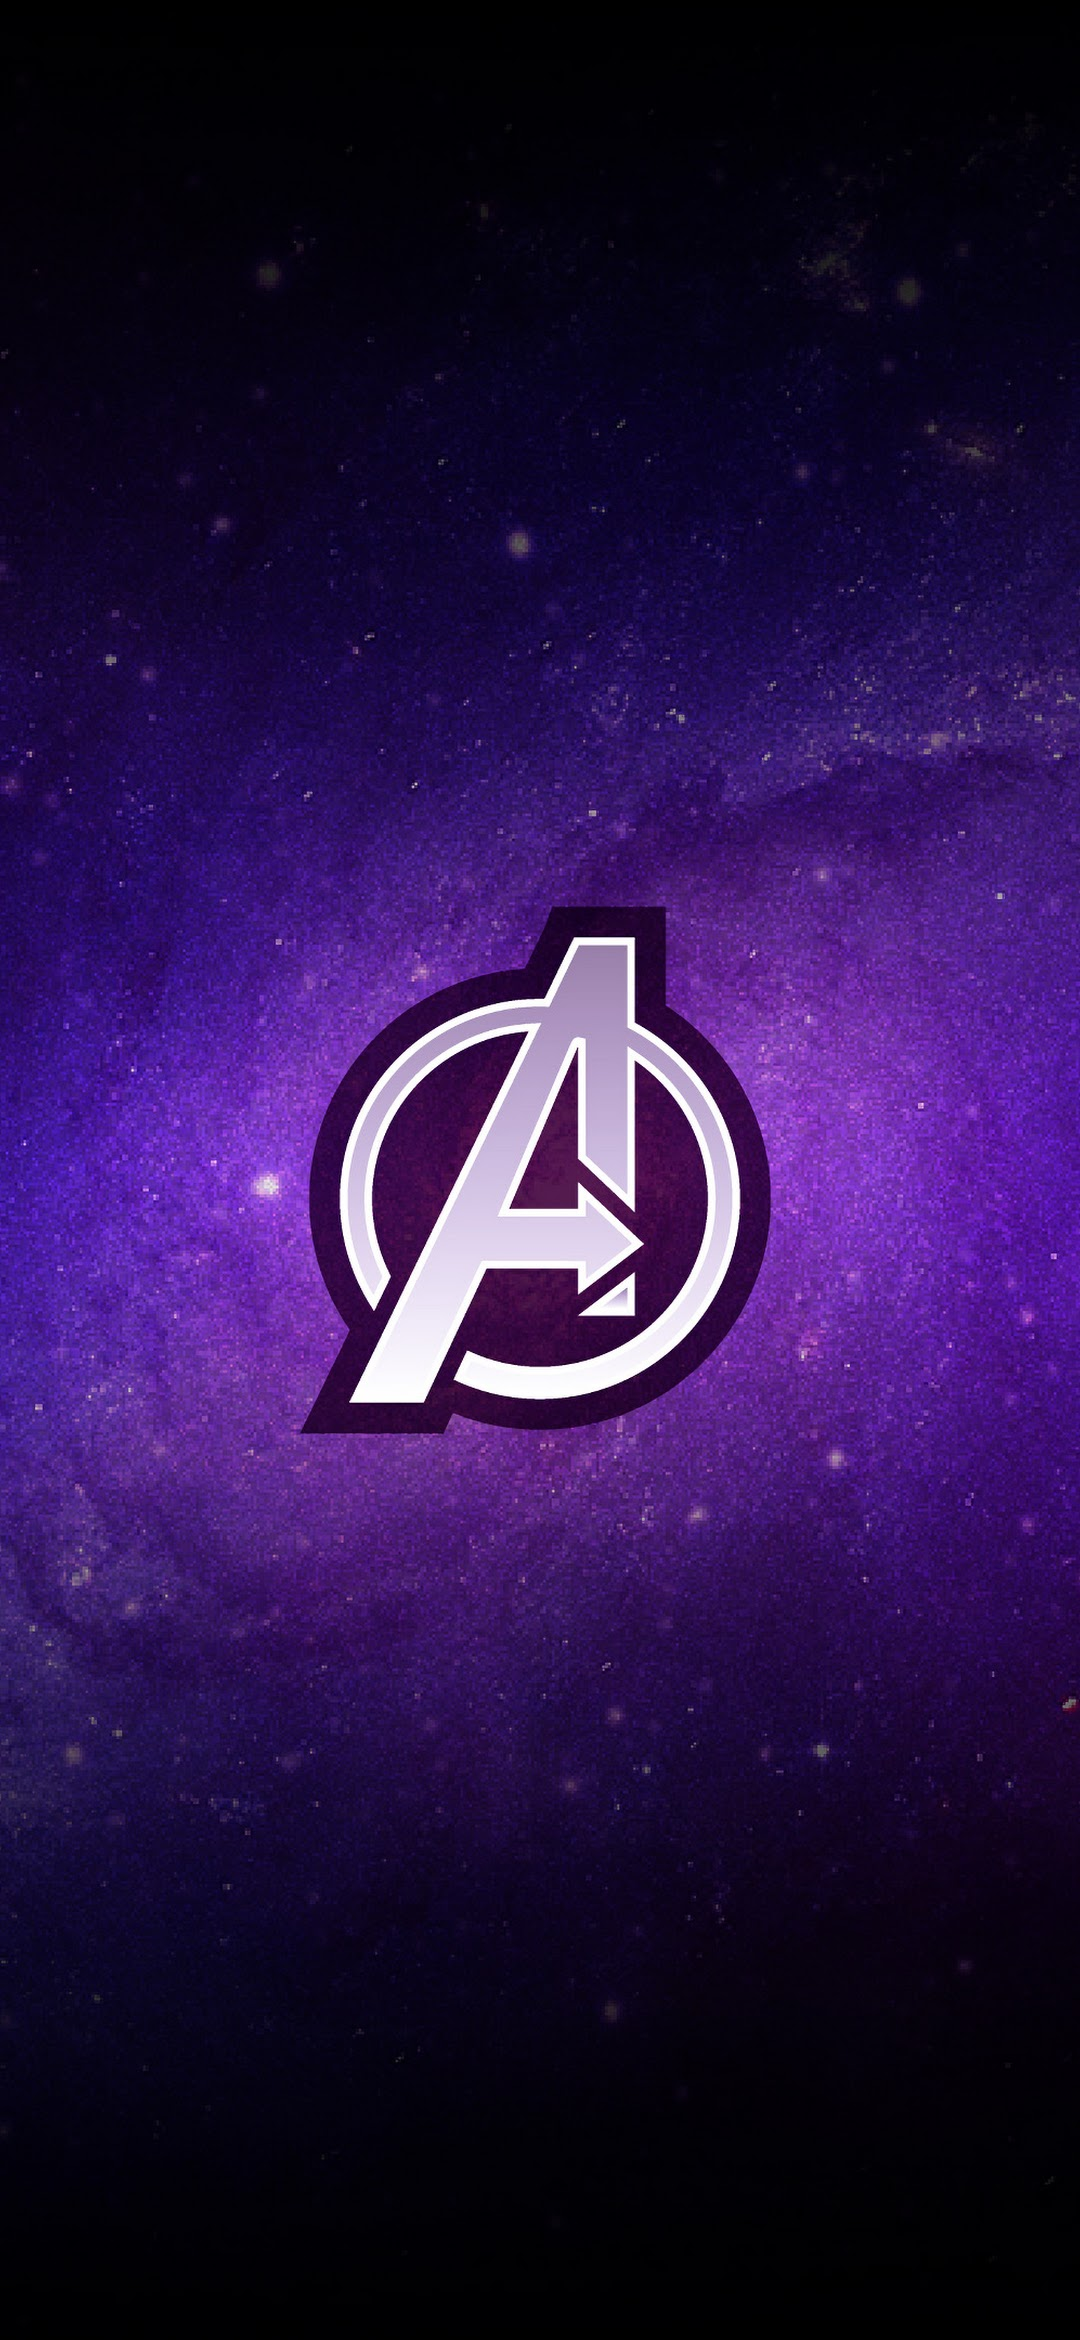 Avengers Endgame Logo 4k Wallpaper 141